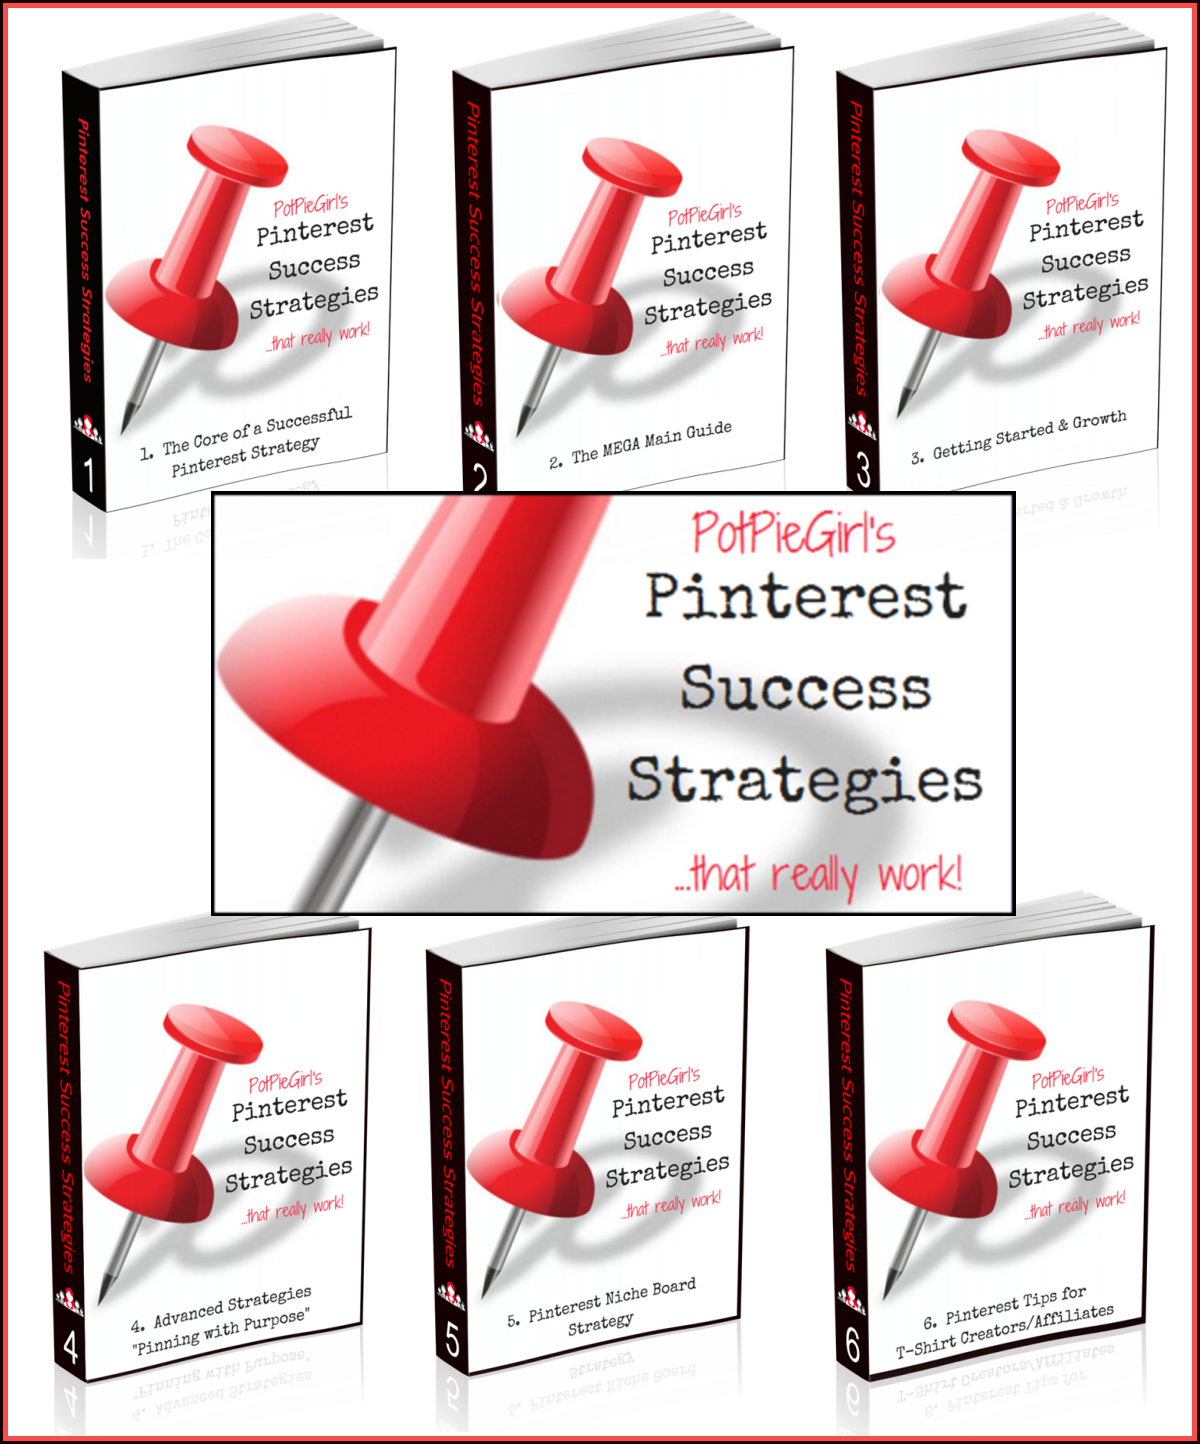 potpiegirl-pinterest-success-strategies-package